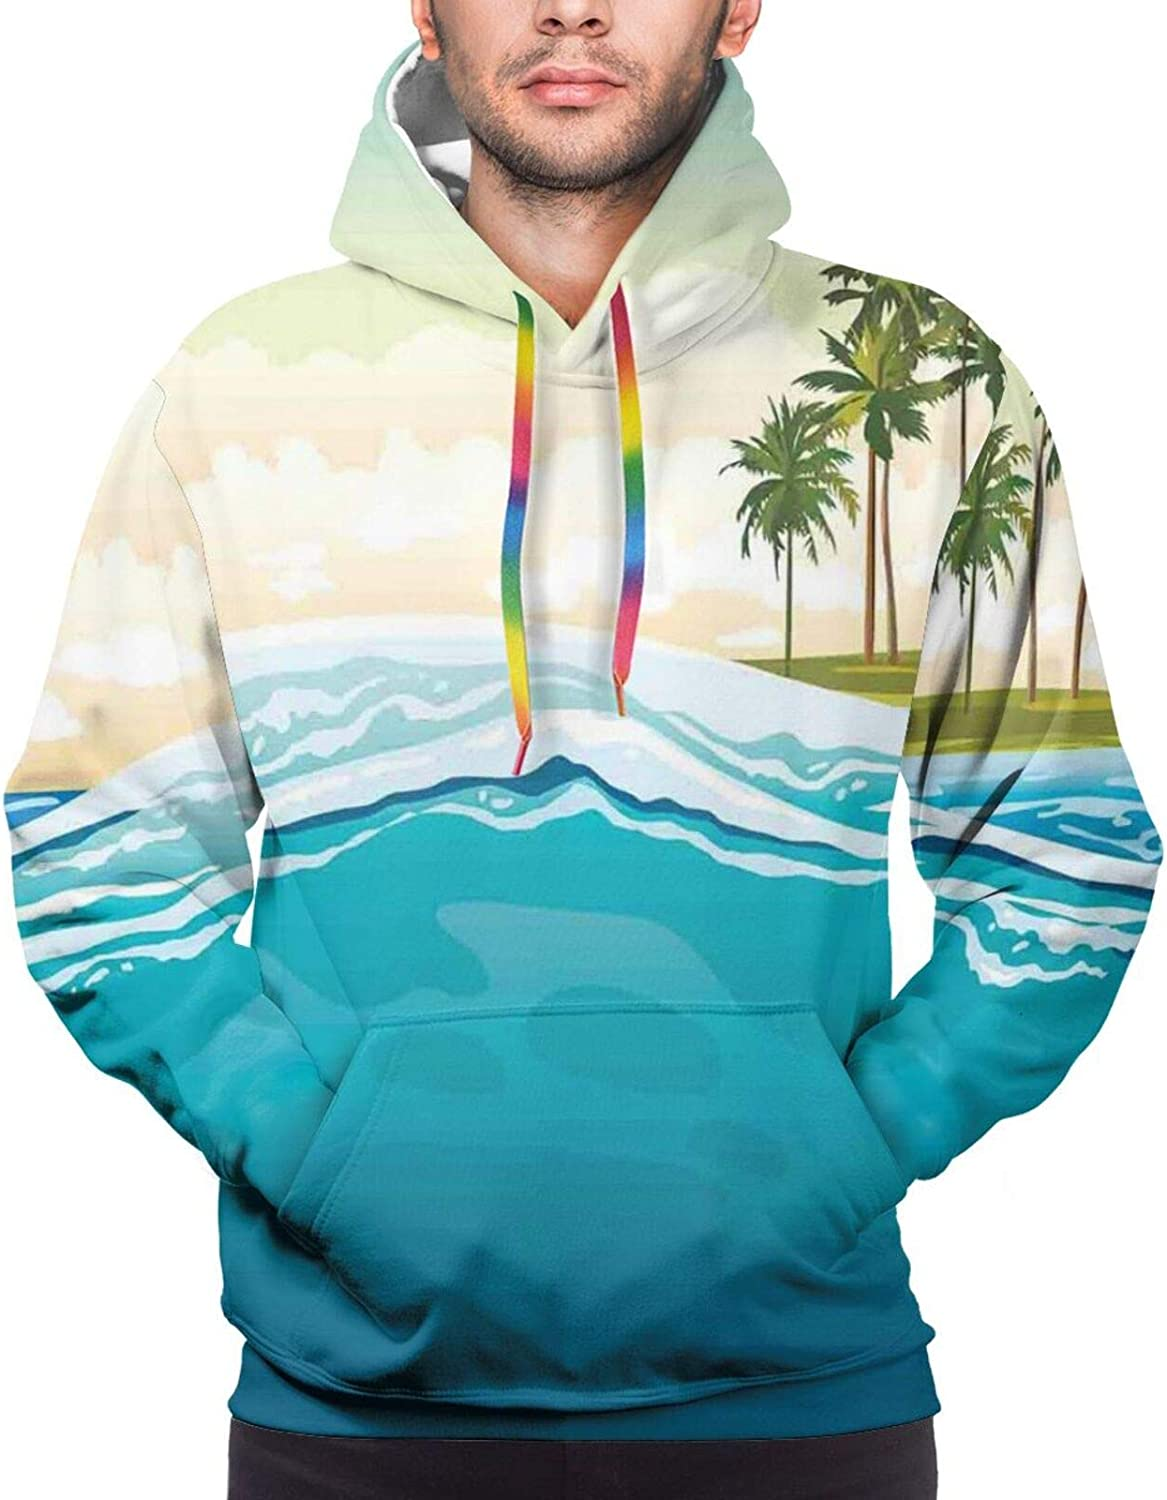 Men's Hoodies Sweatshirts,Coconut Palm Trees On Beach Bend by The Wind Horizon Over The Sea Theme Picture Art